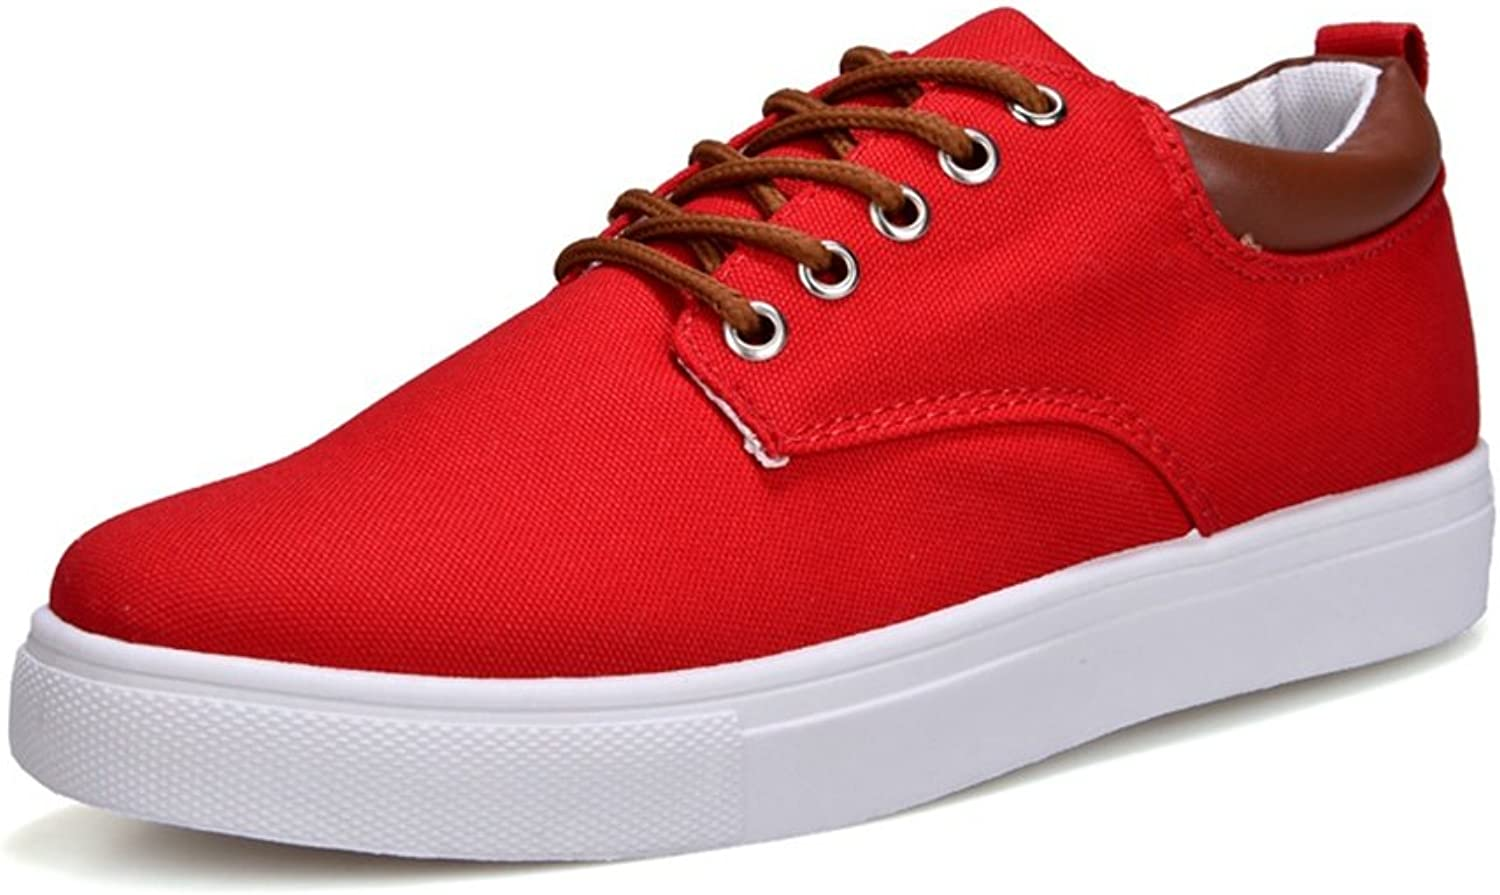 RENMEN Canvas shoes men's wild casual shoes trend large size shoes 39-46, Red